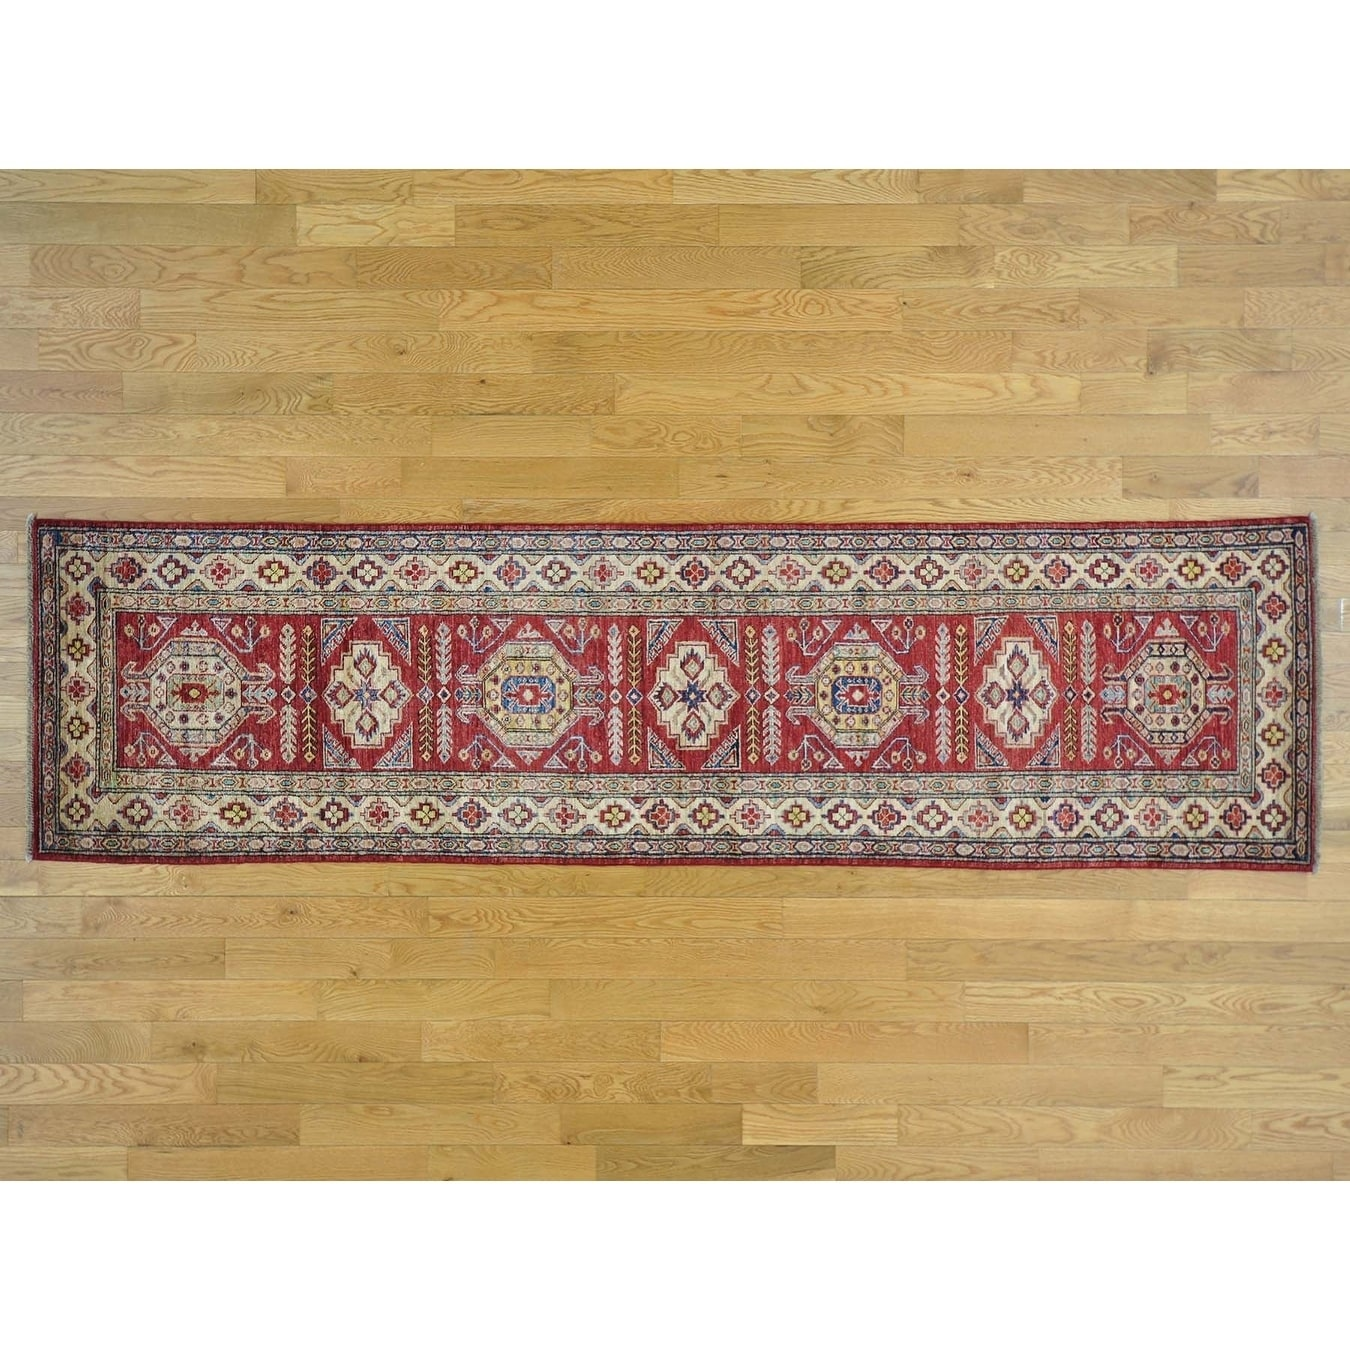 Hand Knotted Red Kazak with Wool Oriental Rug - 210 x 105